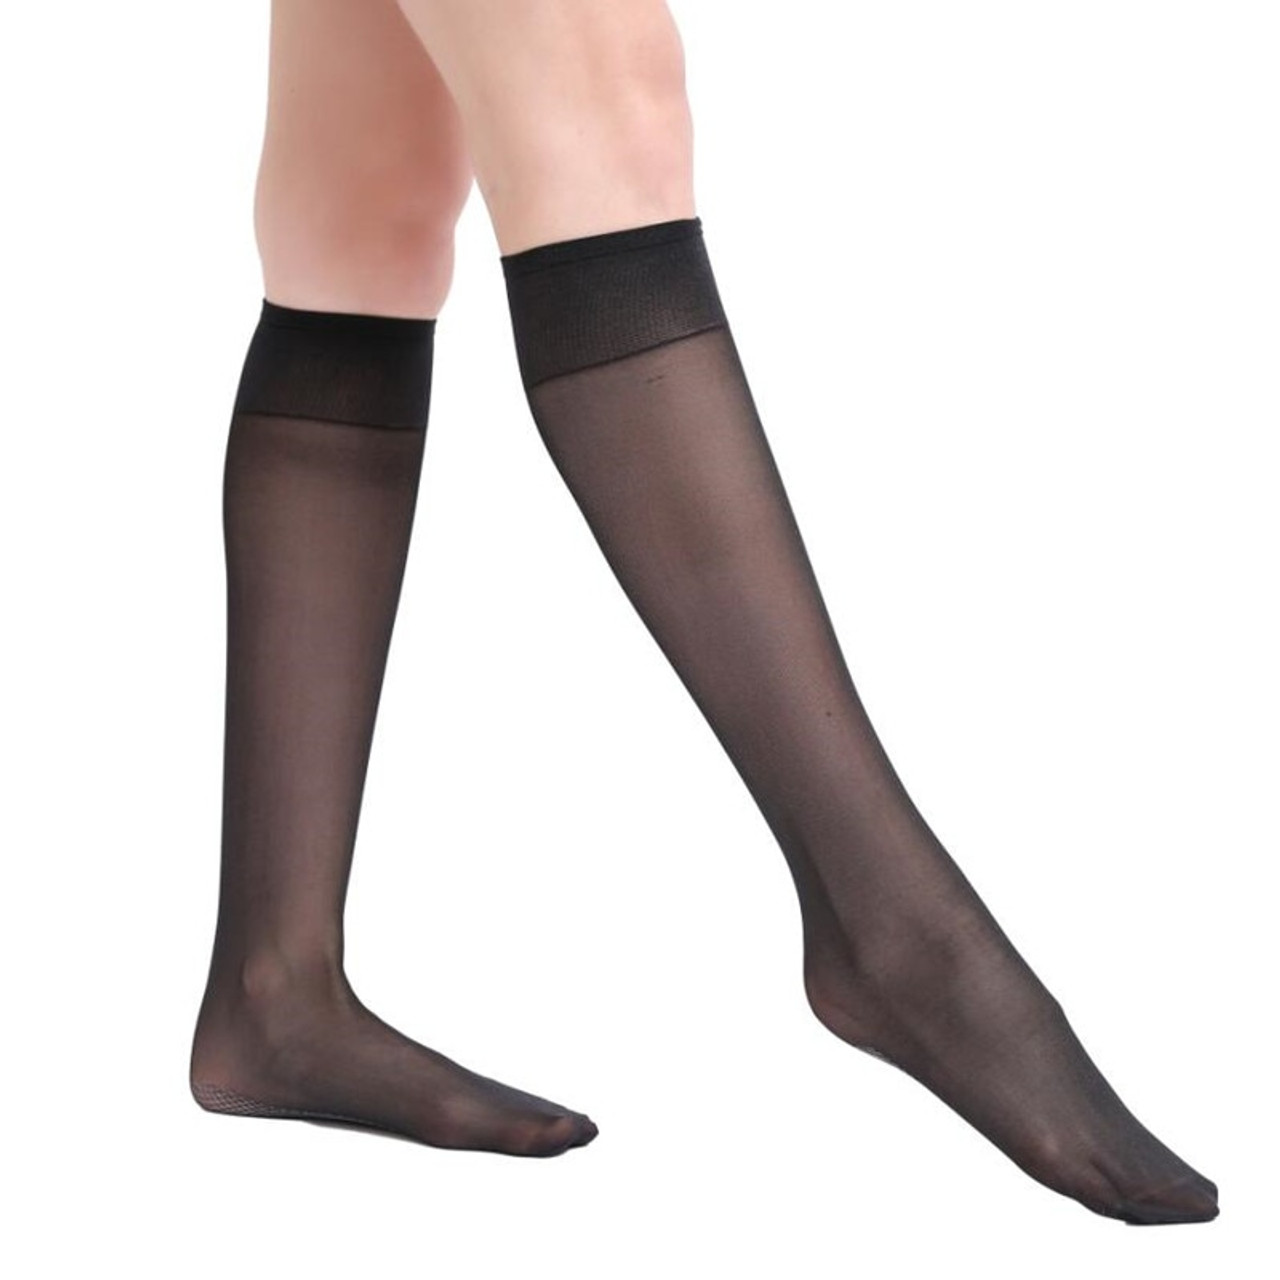 ecd5af839 ... 6 Pairs Lot 40D Women s Breathable Knee Highs Cotton Blend Sole Socks  Lady s 40D Sheer All ...